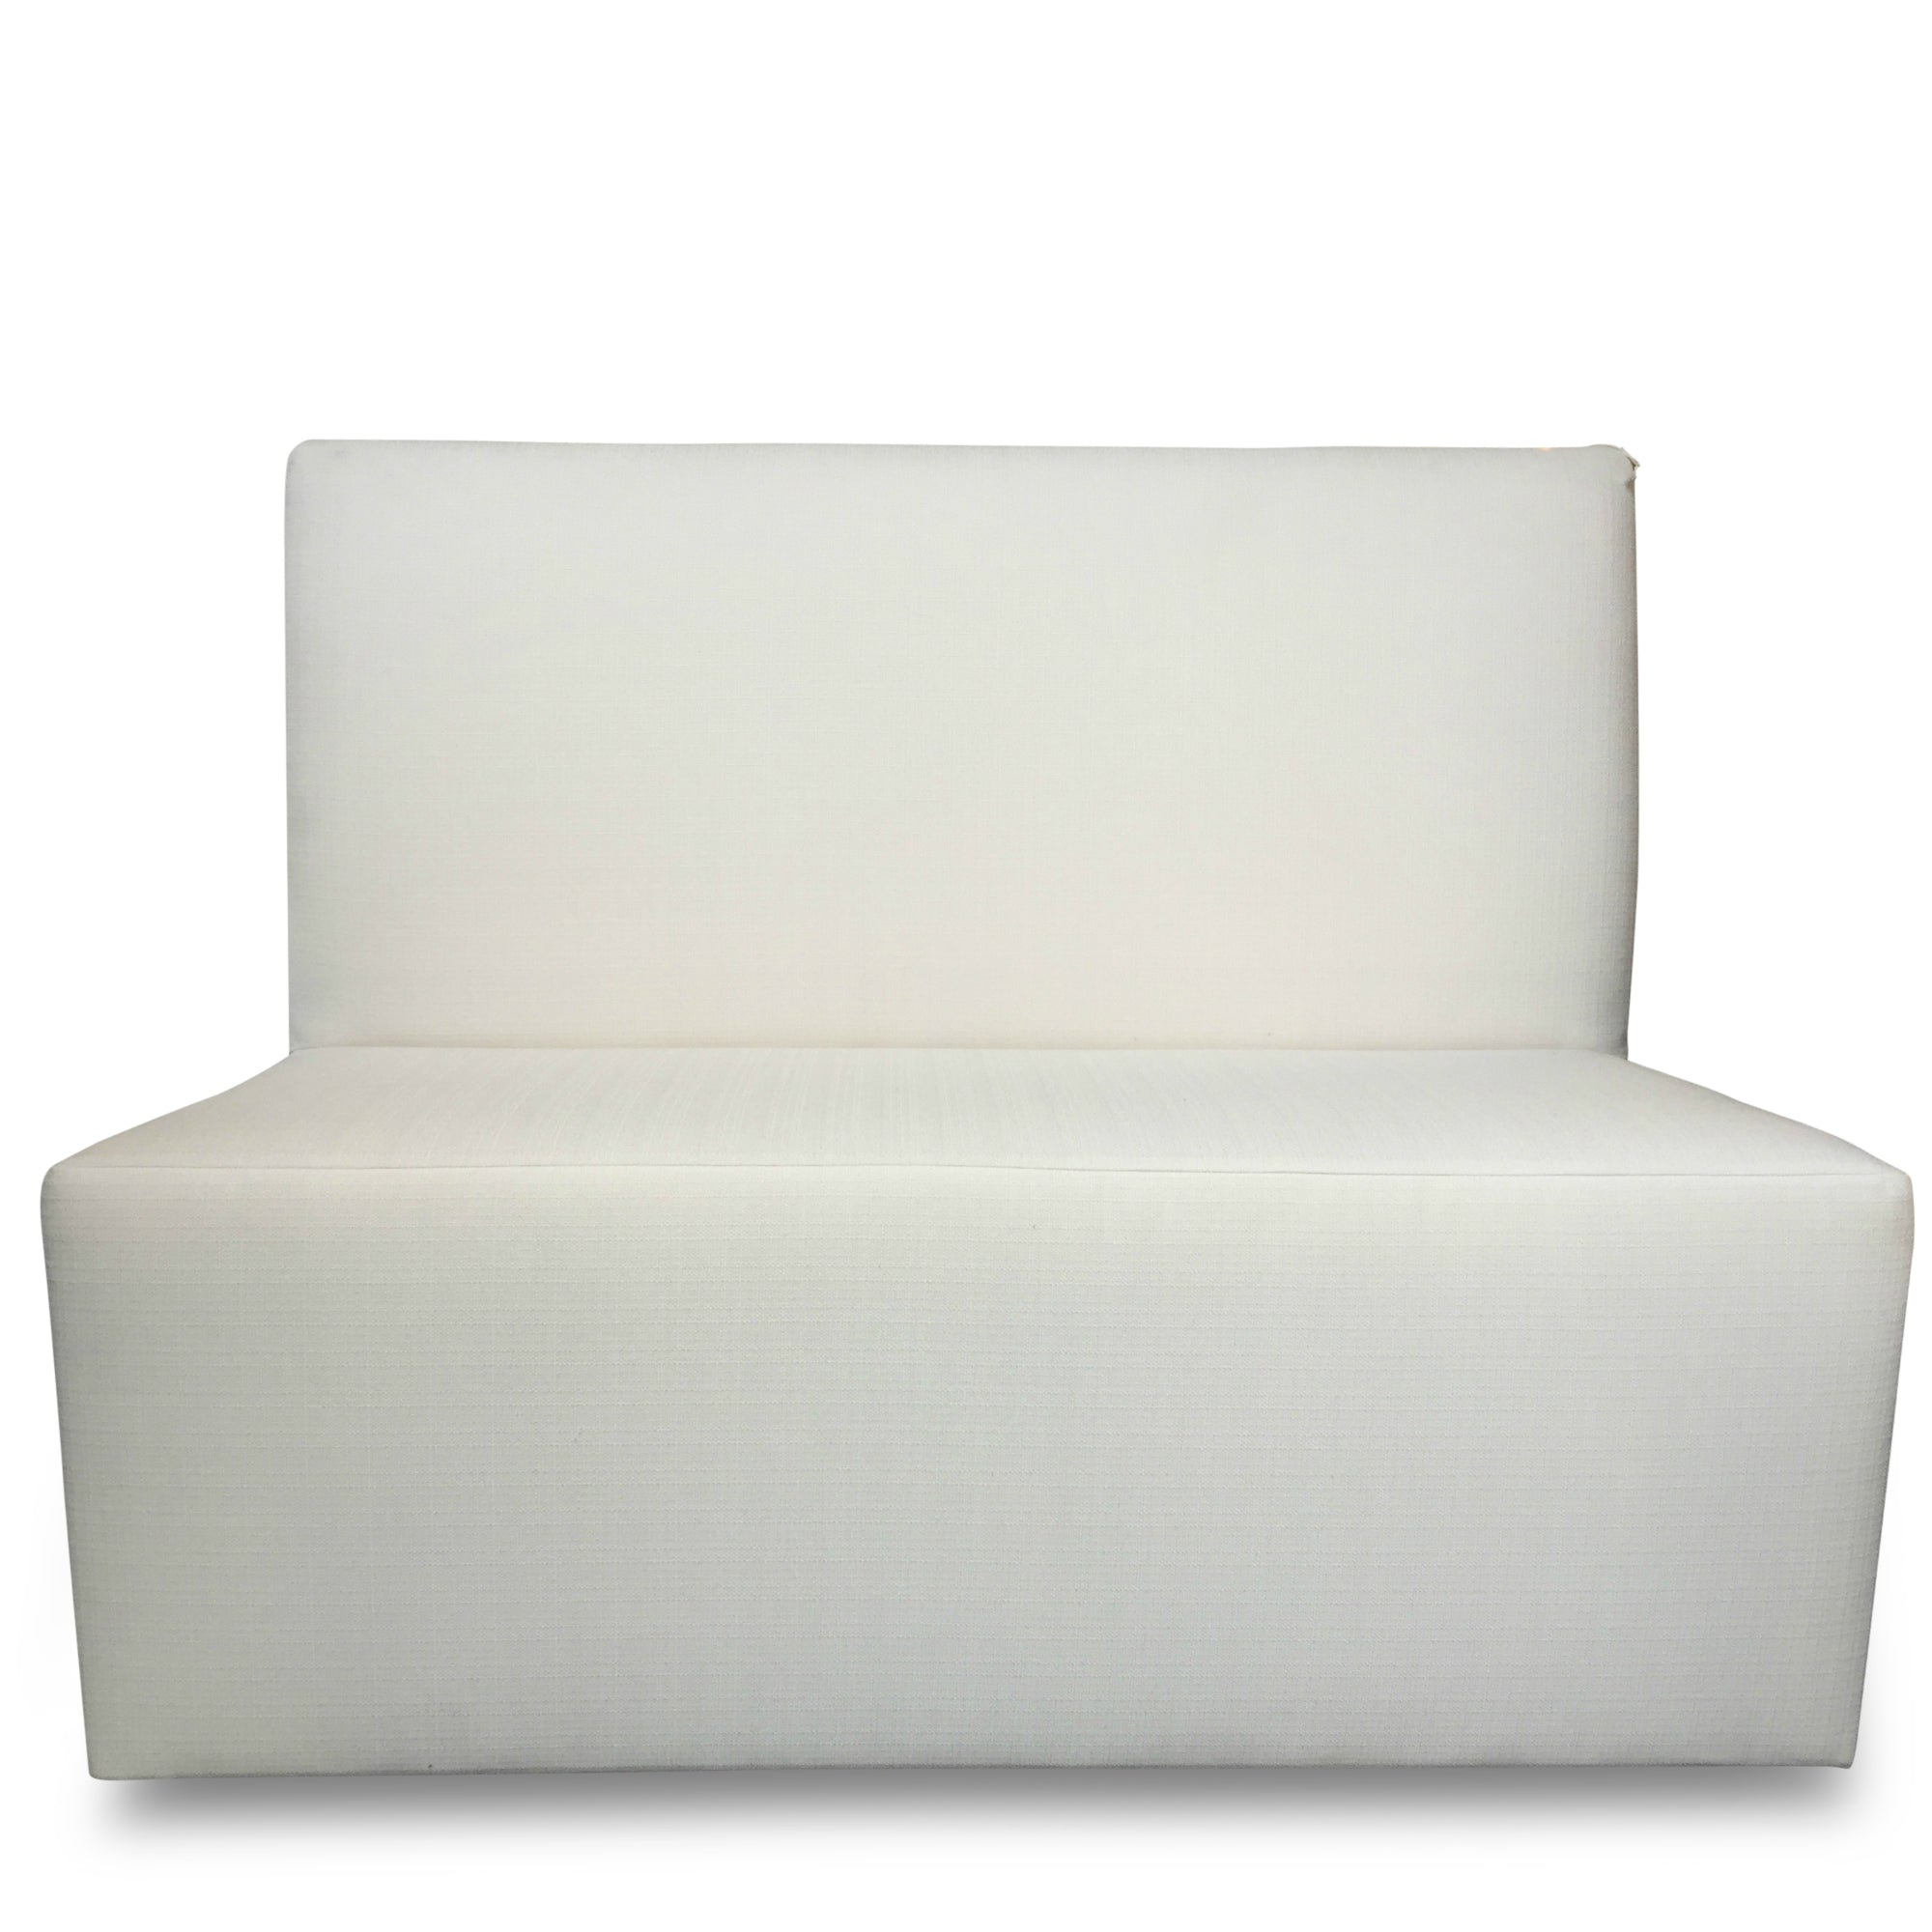 Chester Banquette